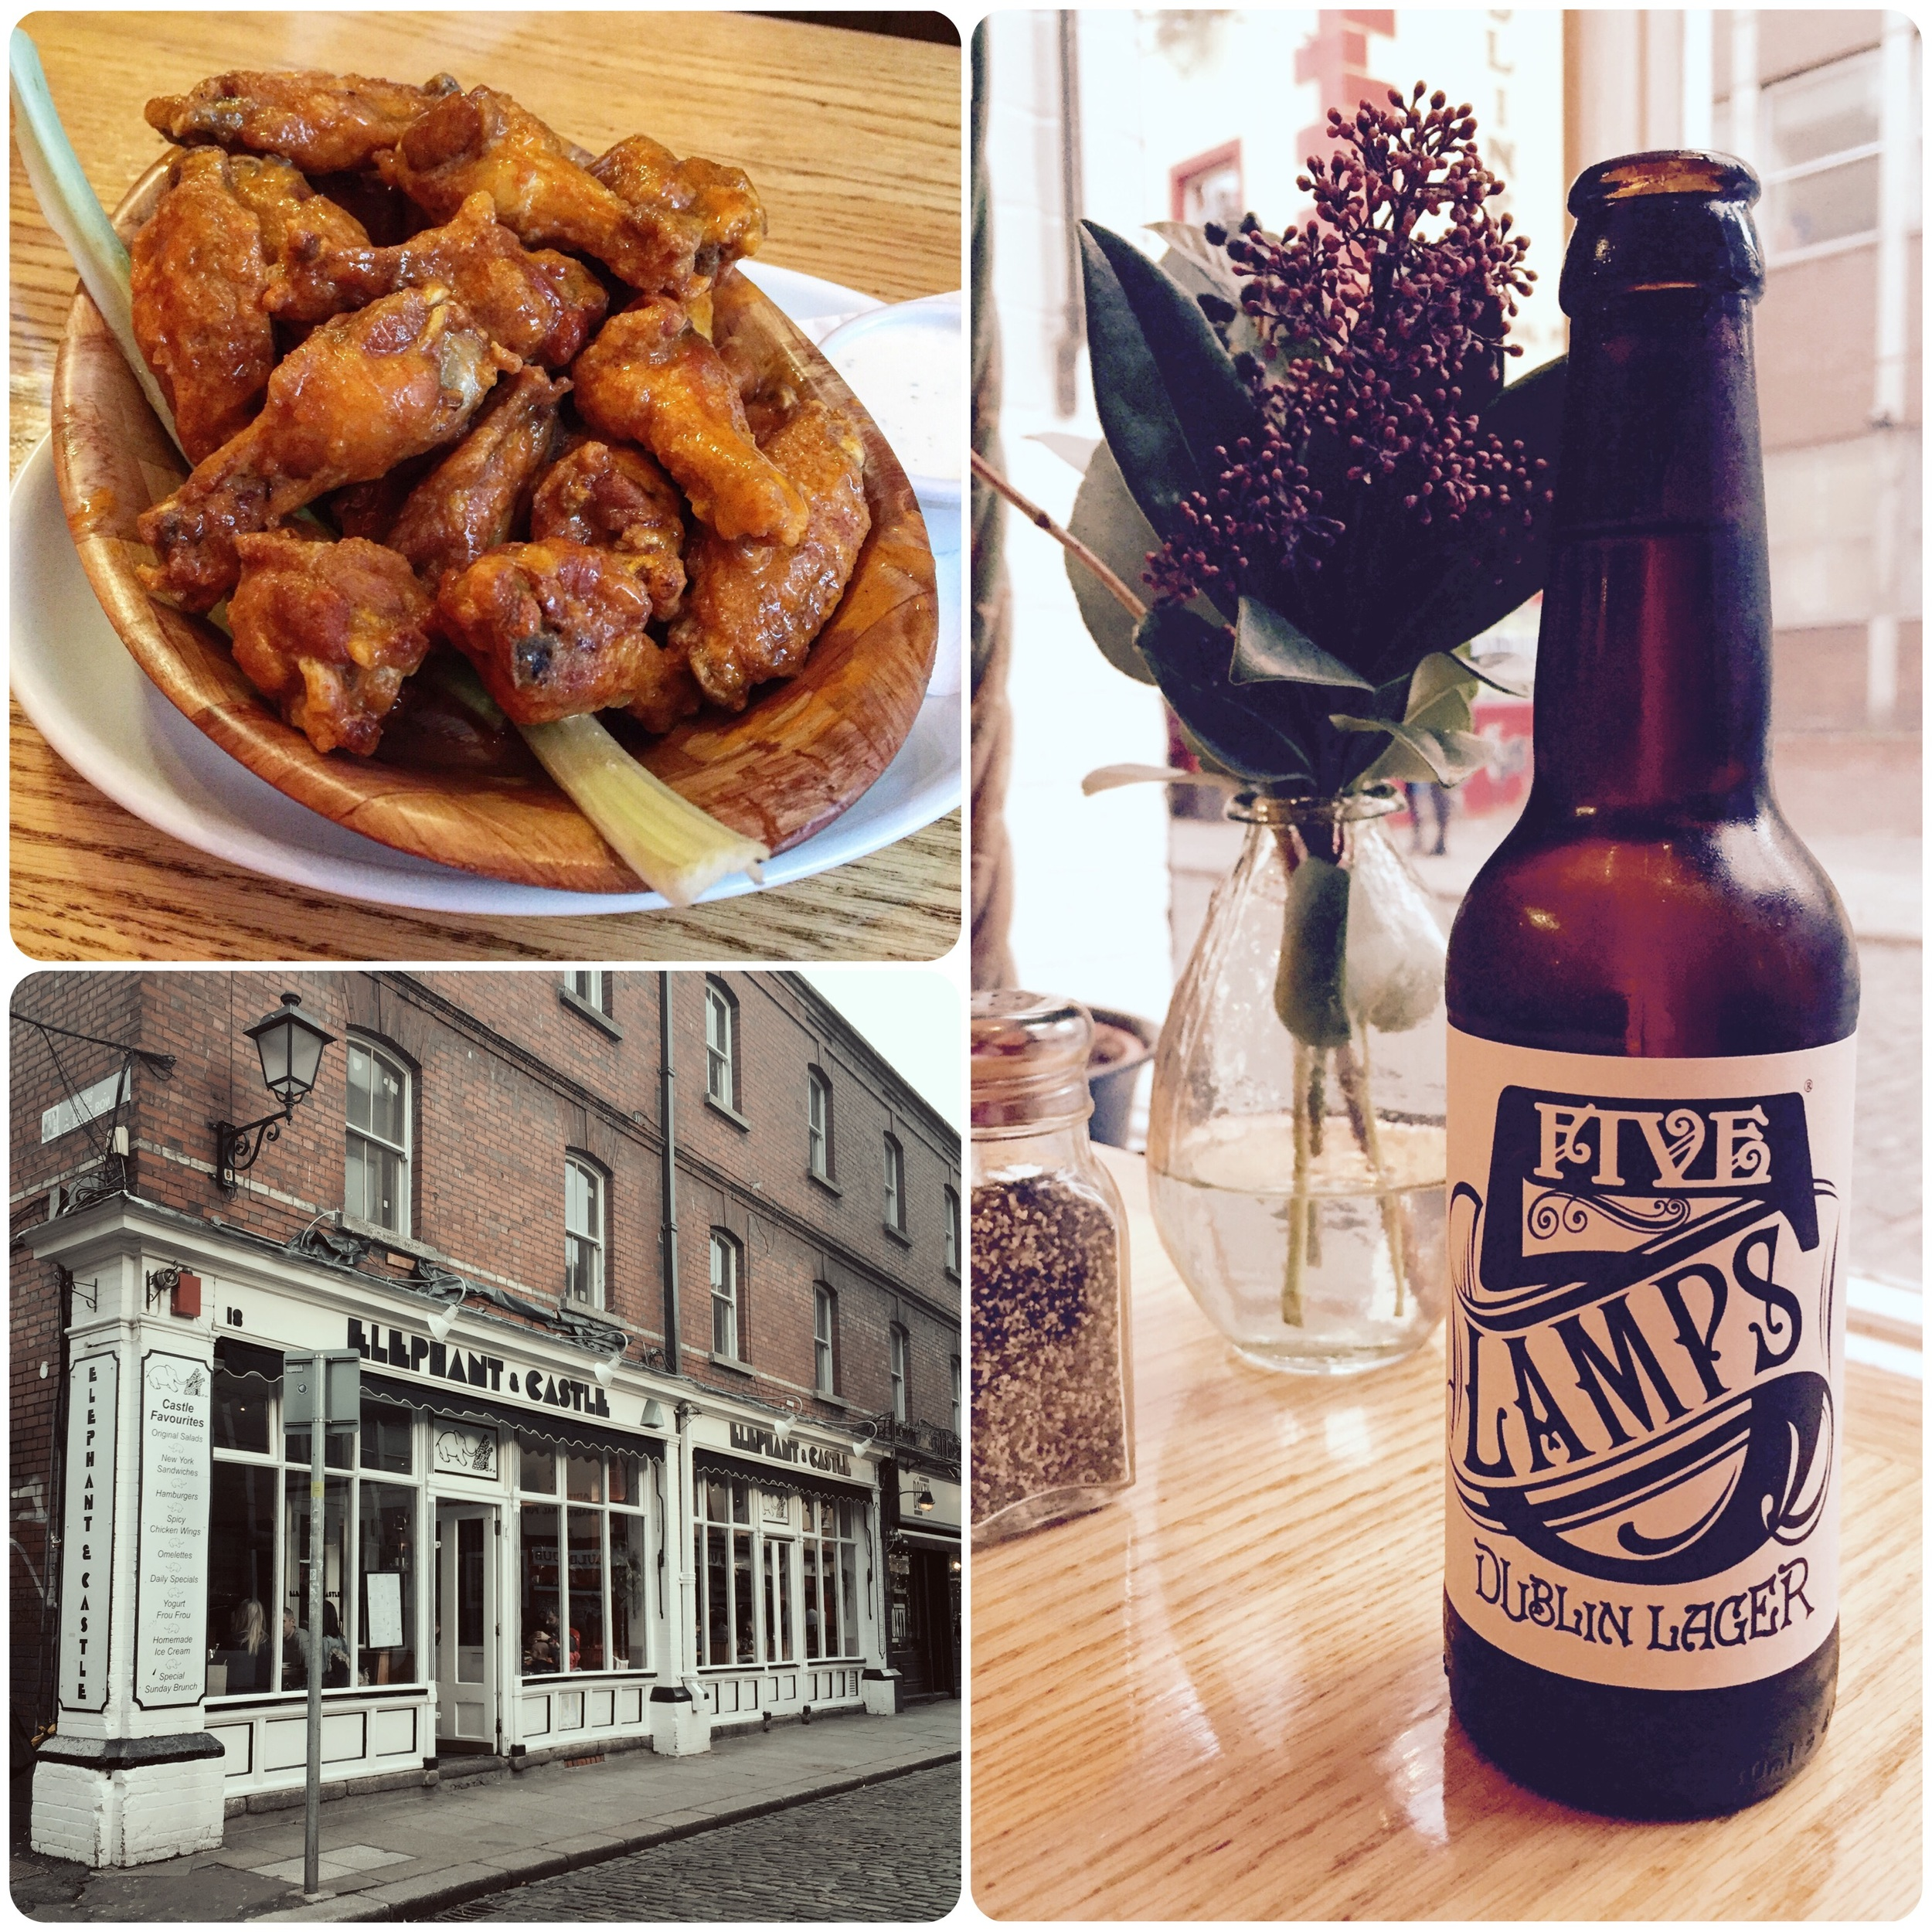 Don't go home without trying Elephant & Castle's spicy chicken wings. They are famous the world over.